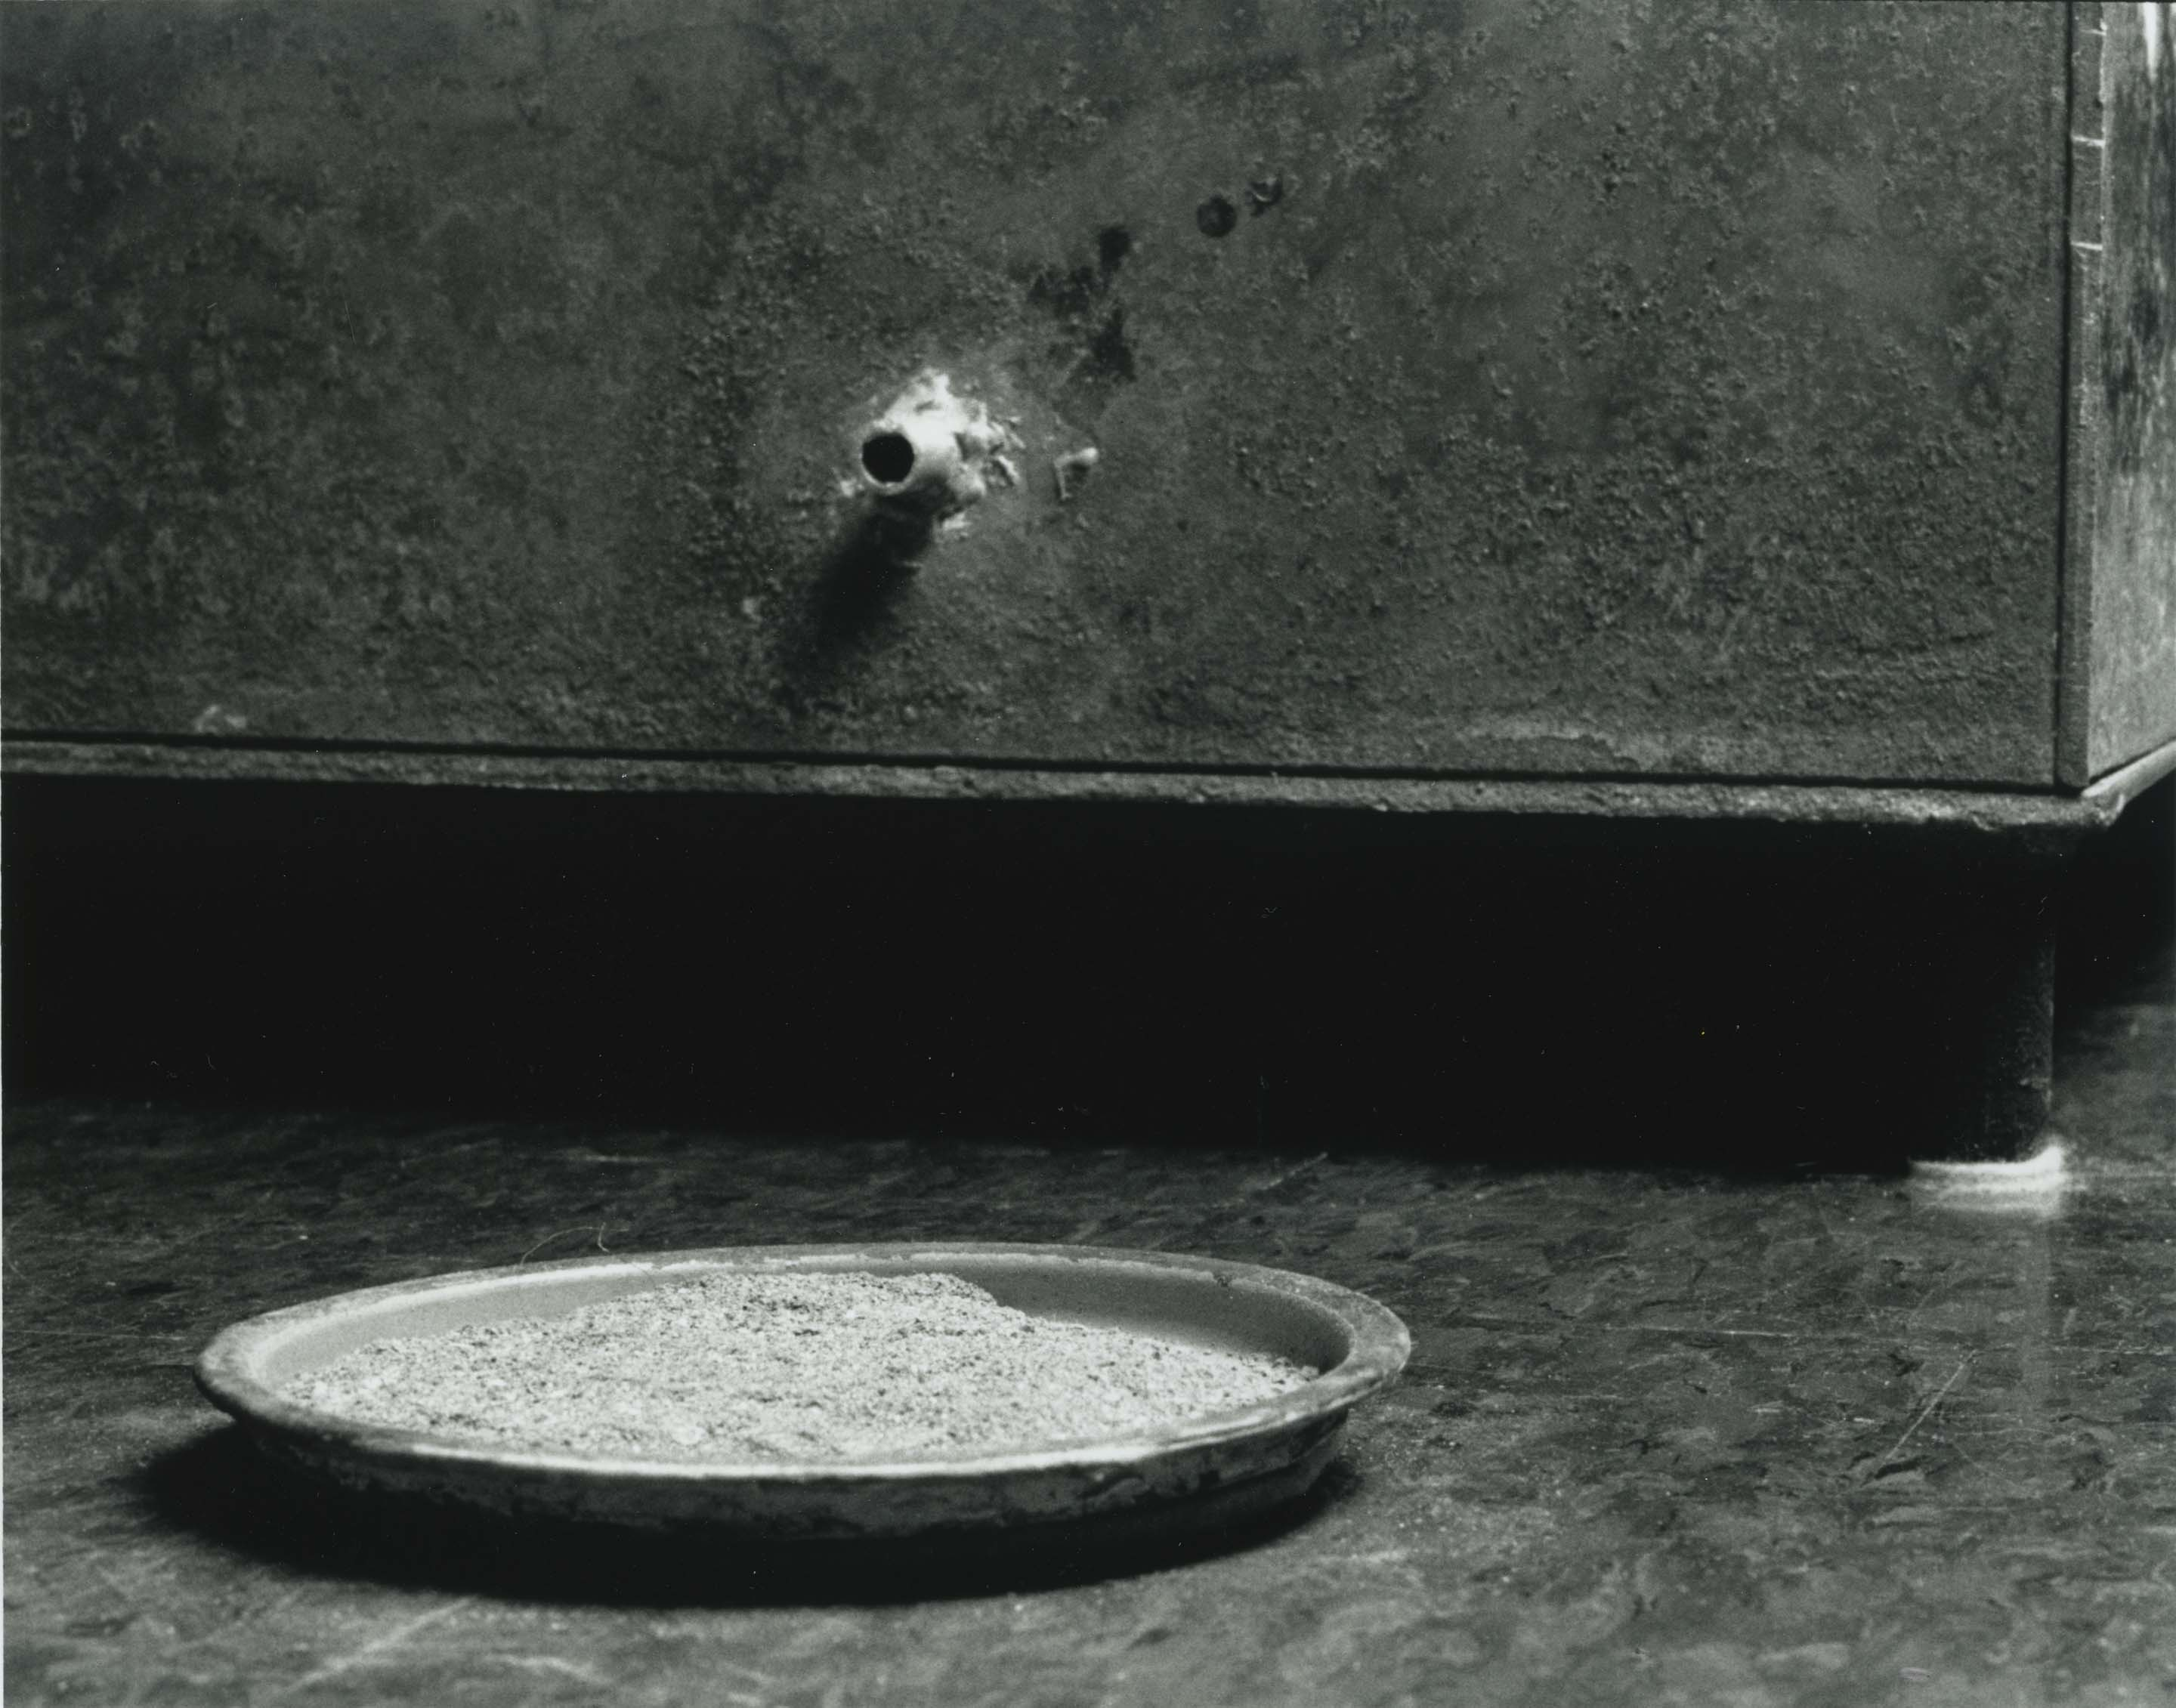 A spigot protrudes from the corner of a large box, opening above a flat dish filled with ashes.